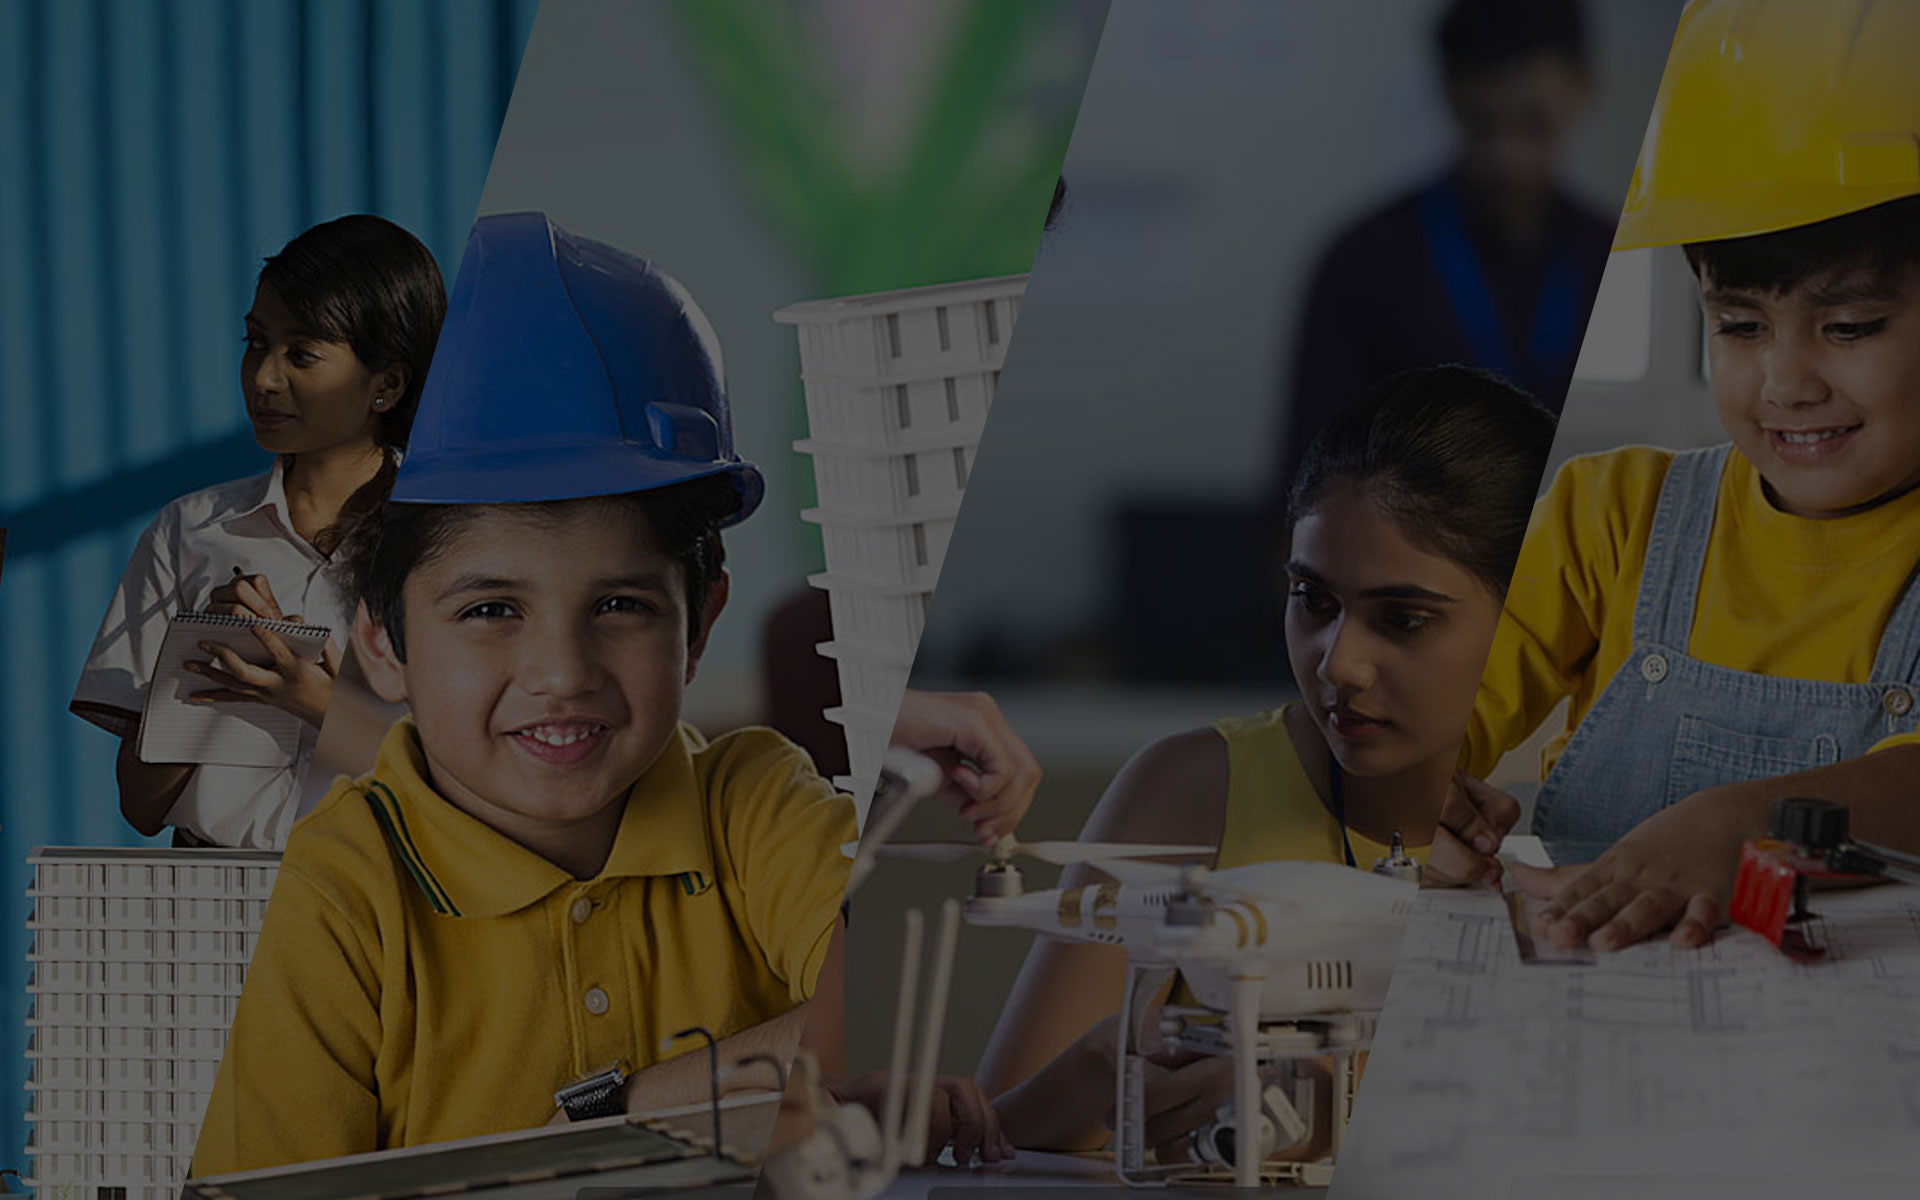 Design and Engineering Summer Camp